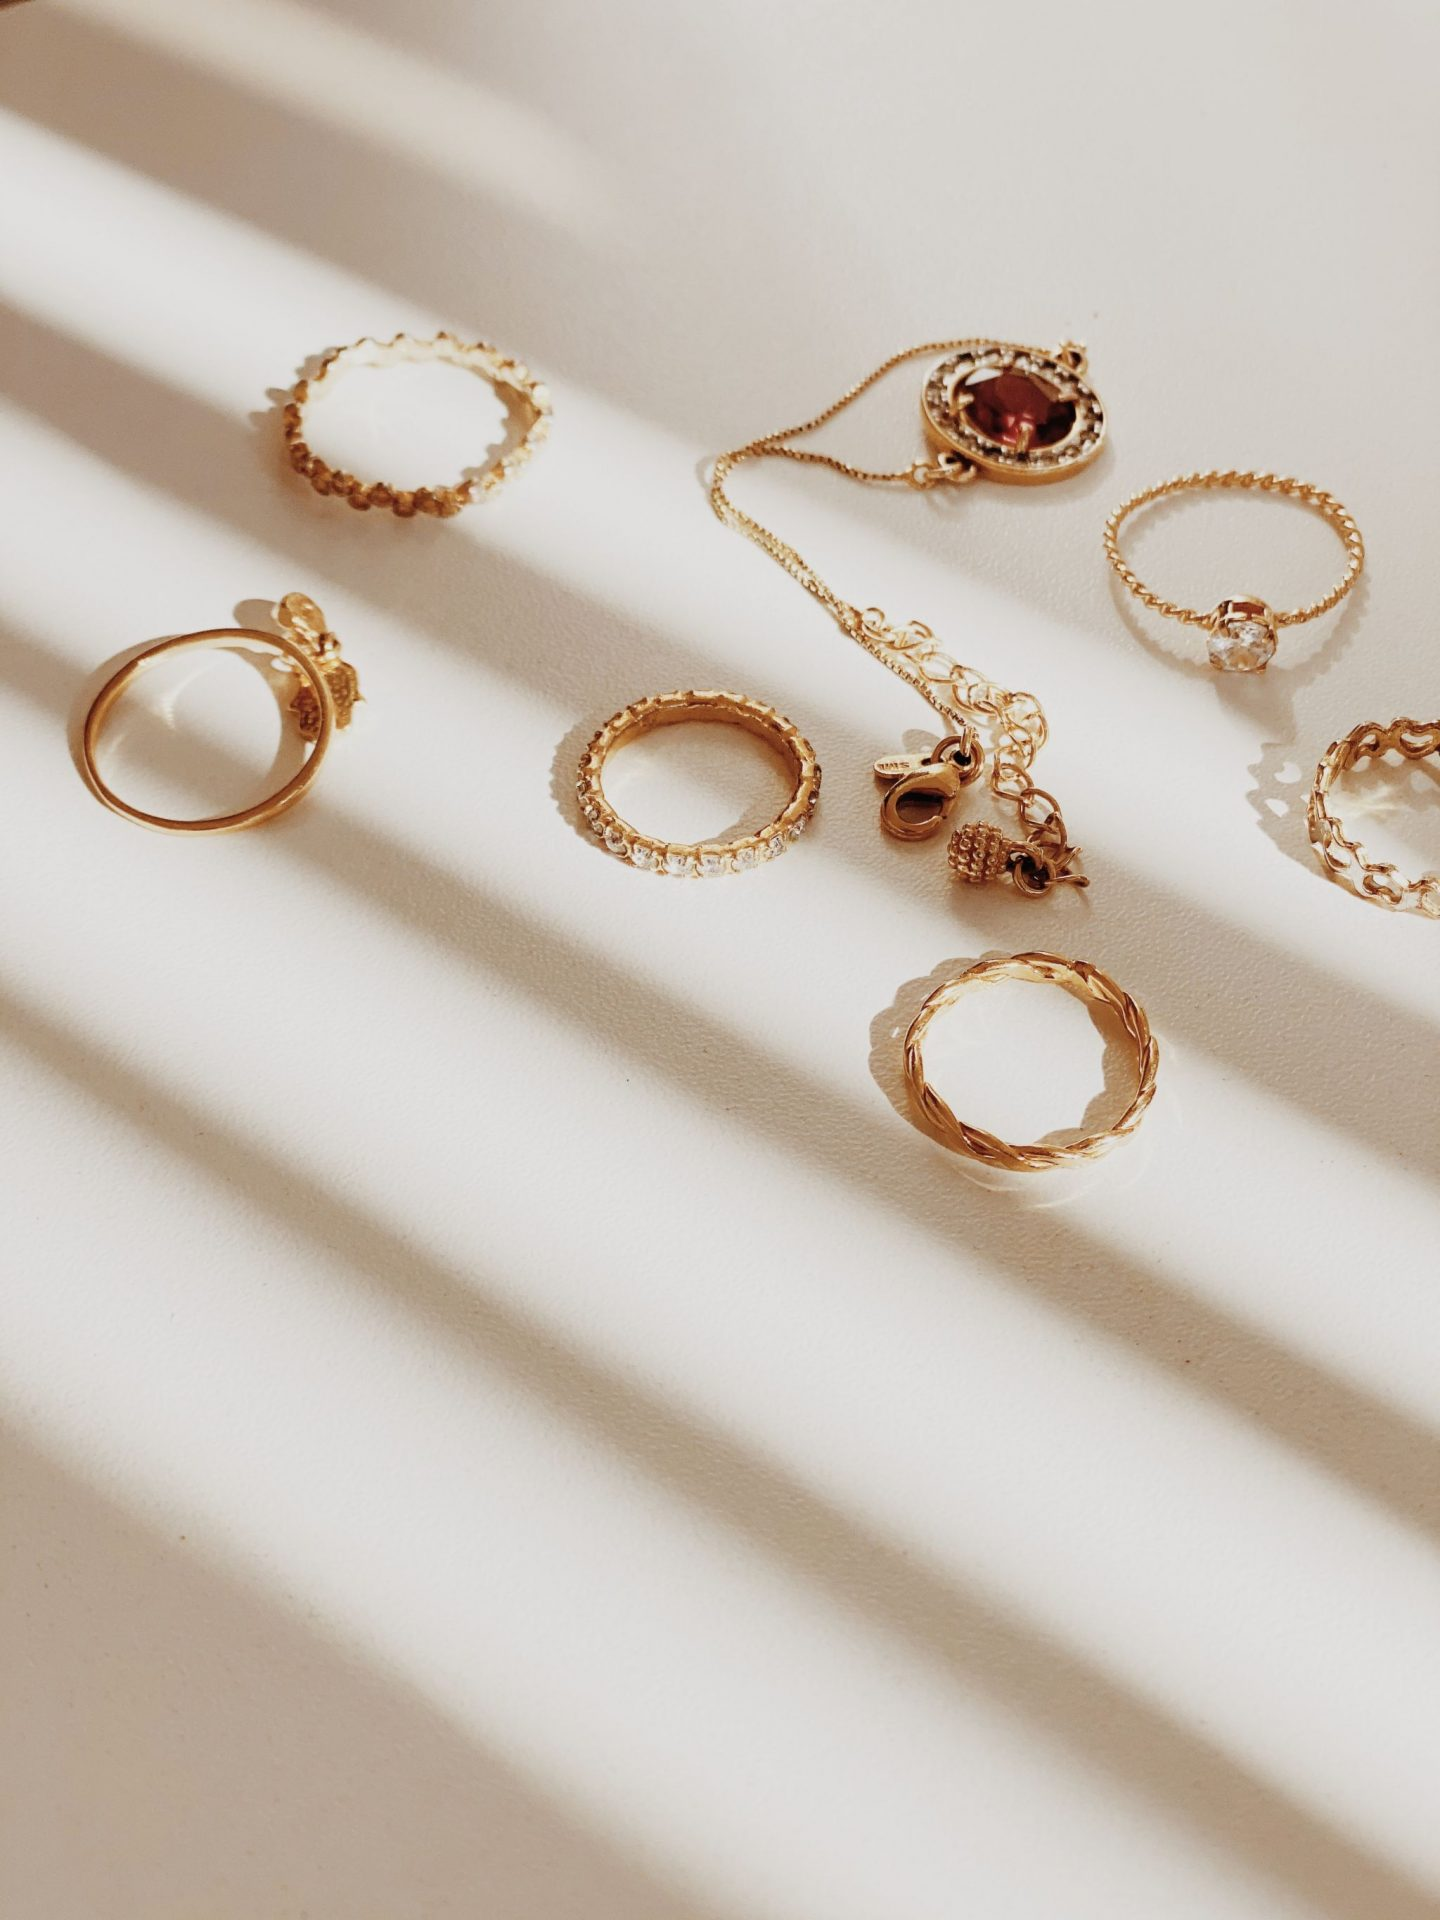 HOW VINTAGE, ANTIQUE, AND RETRO JEWELLERY ARE DIFFERENT